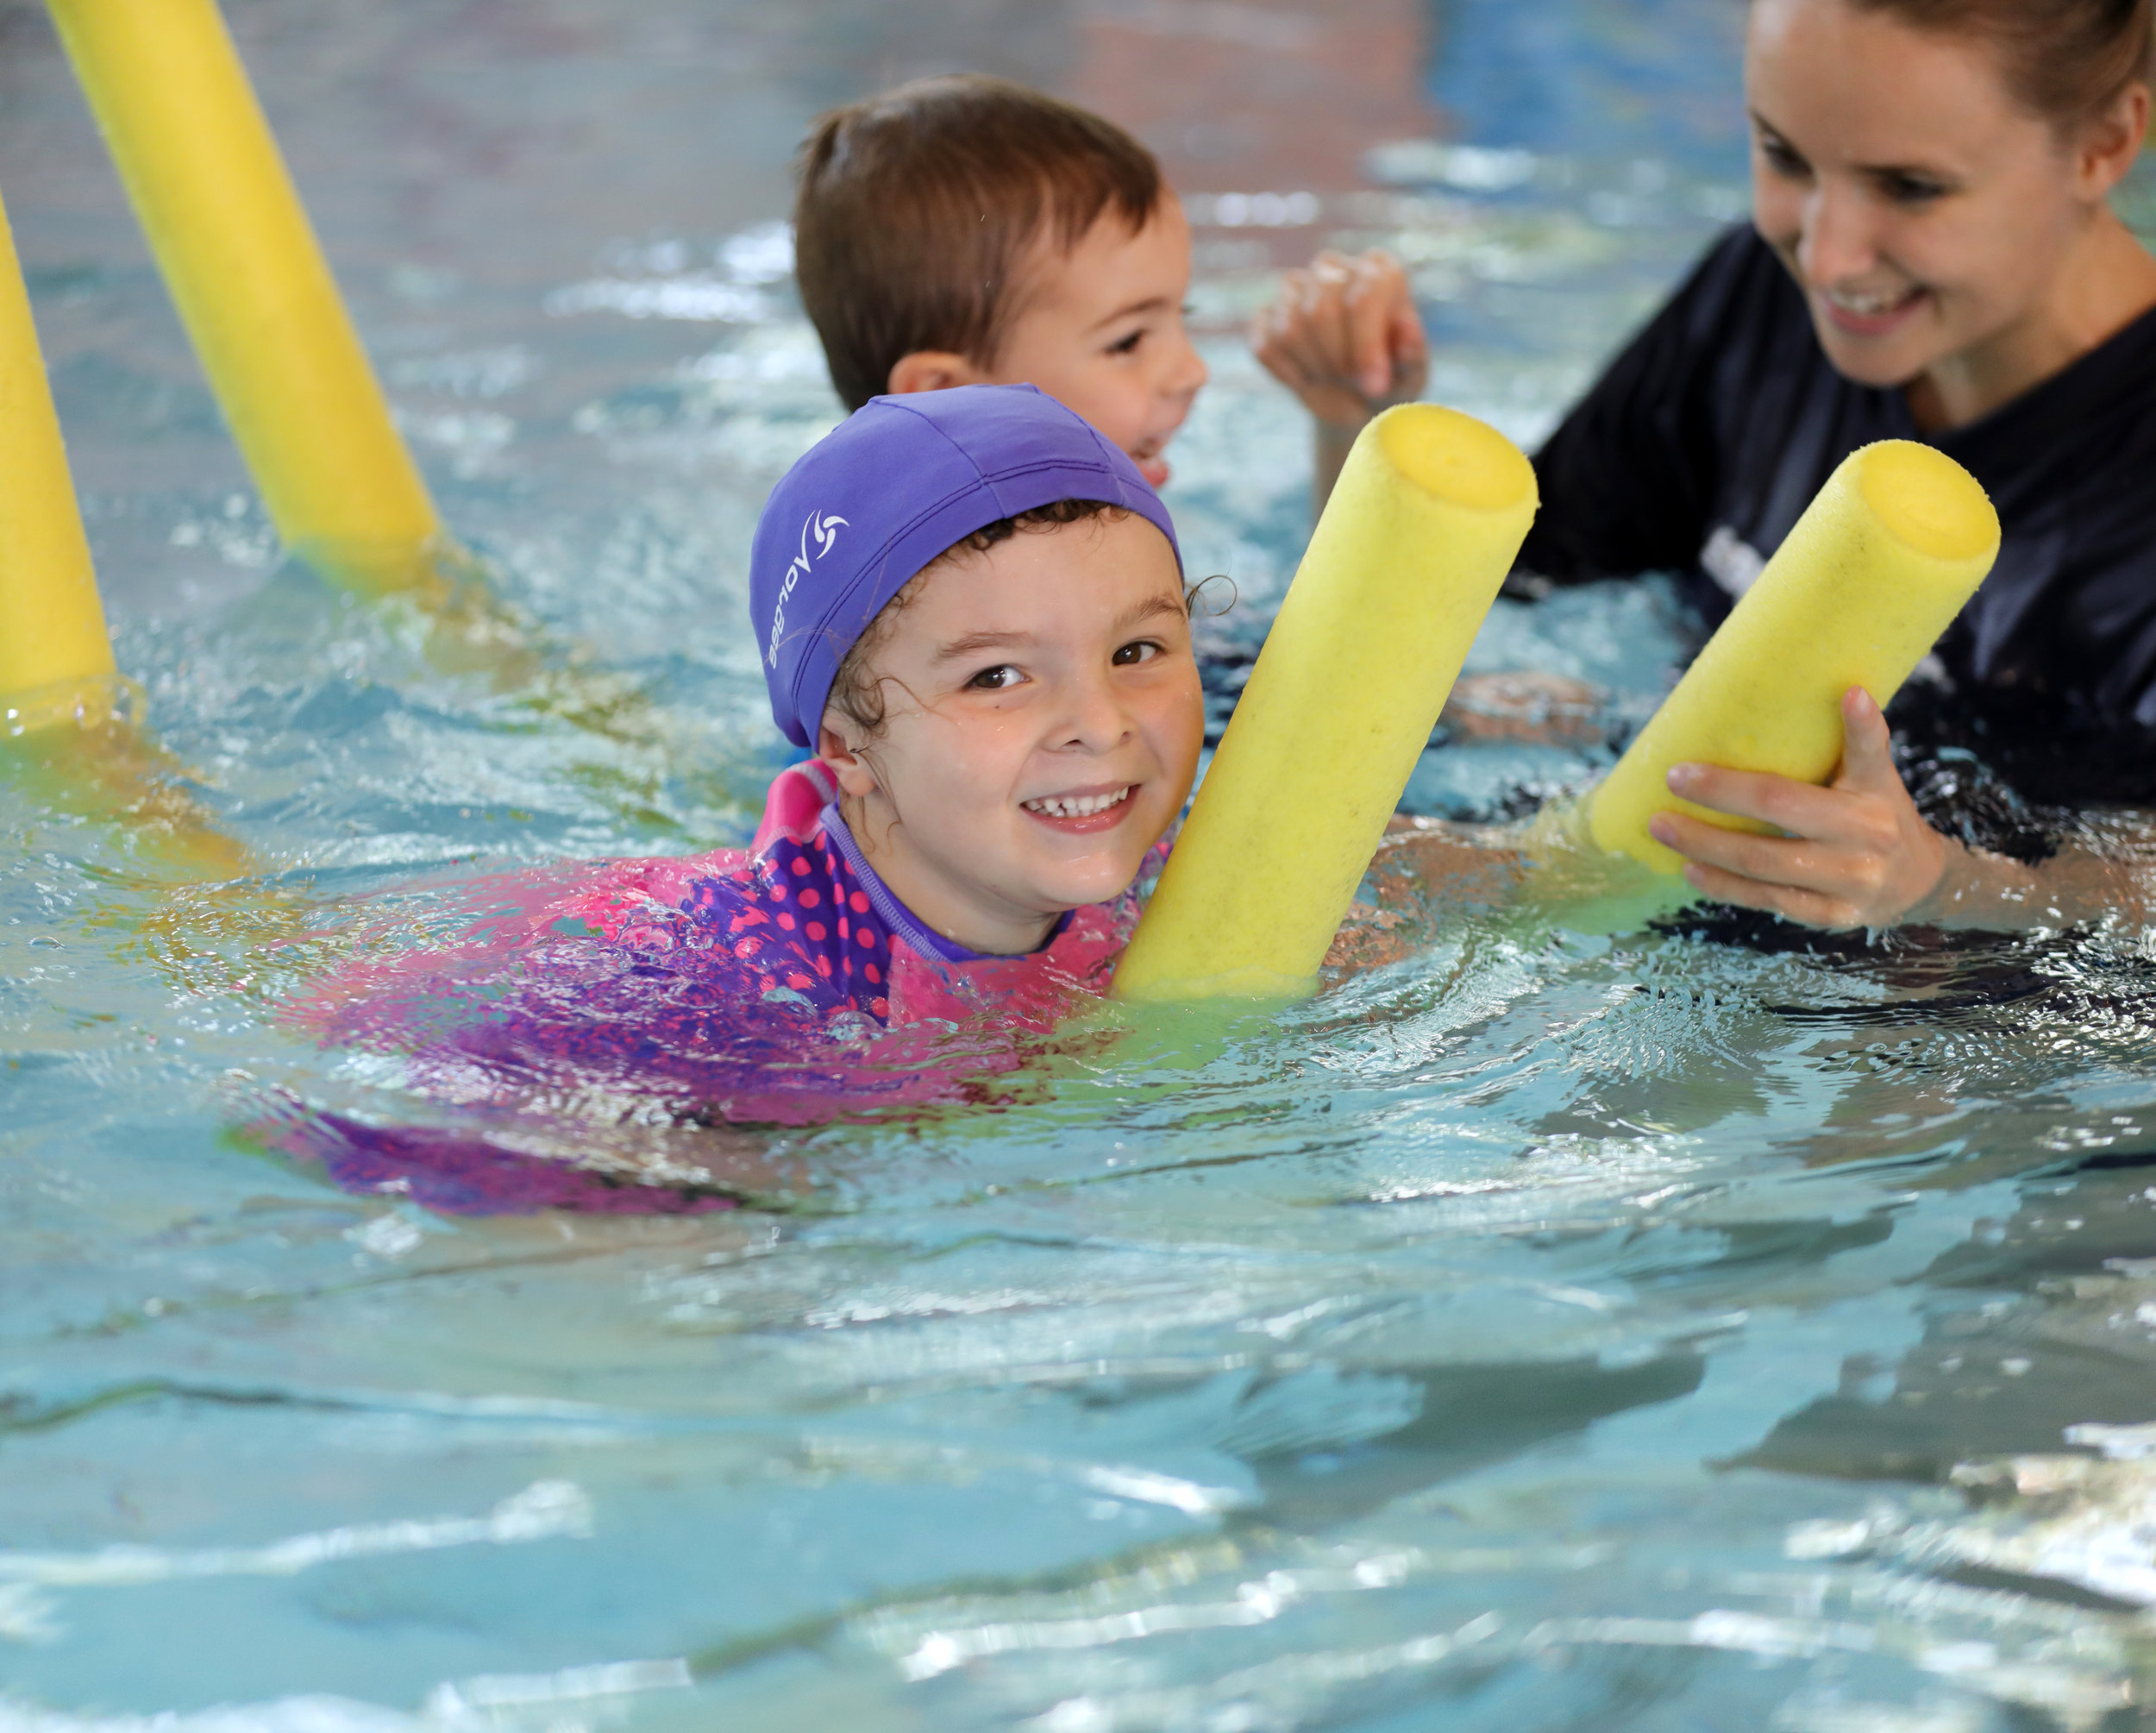 Learn to Swim - Our Learn to Swim Program offers a fun pathway for children of various ages. We teach survival skills as well as technique, giving all swimmers the opportunity to be able to compete or swim recreationally.